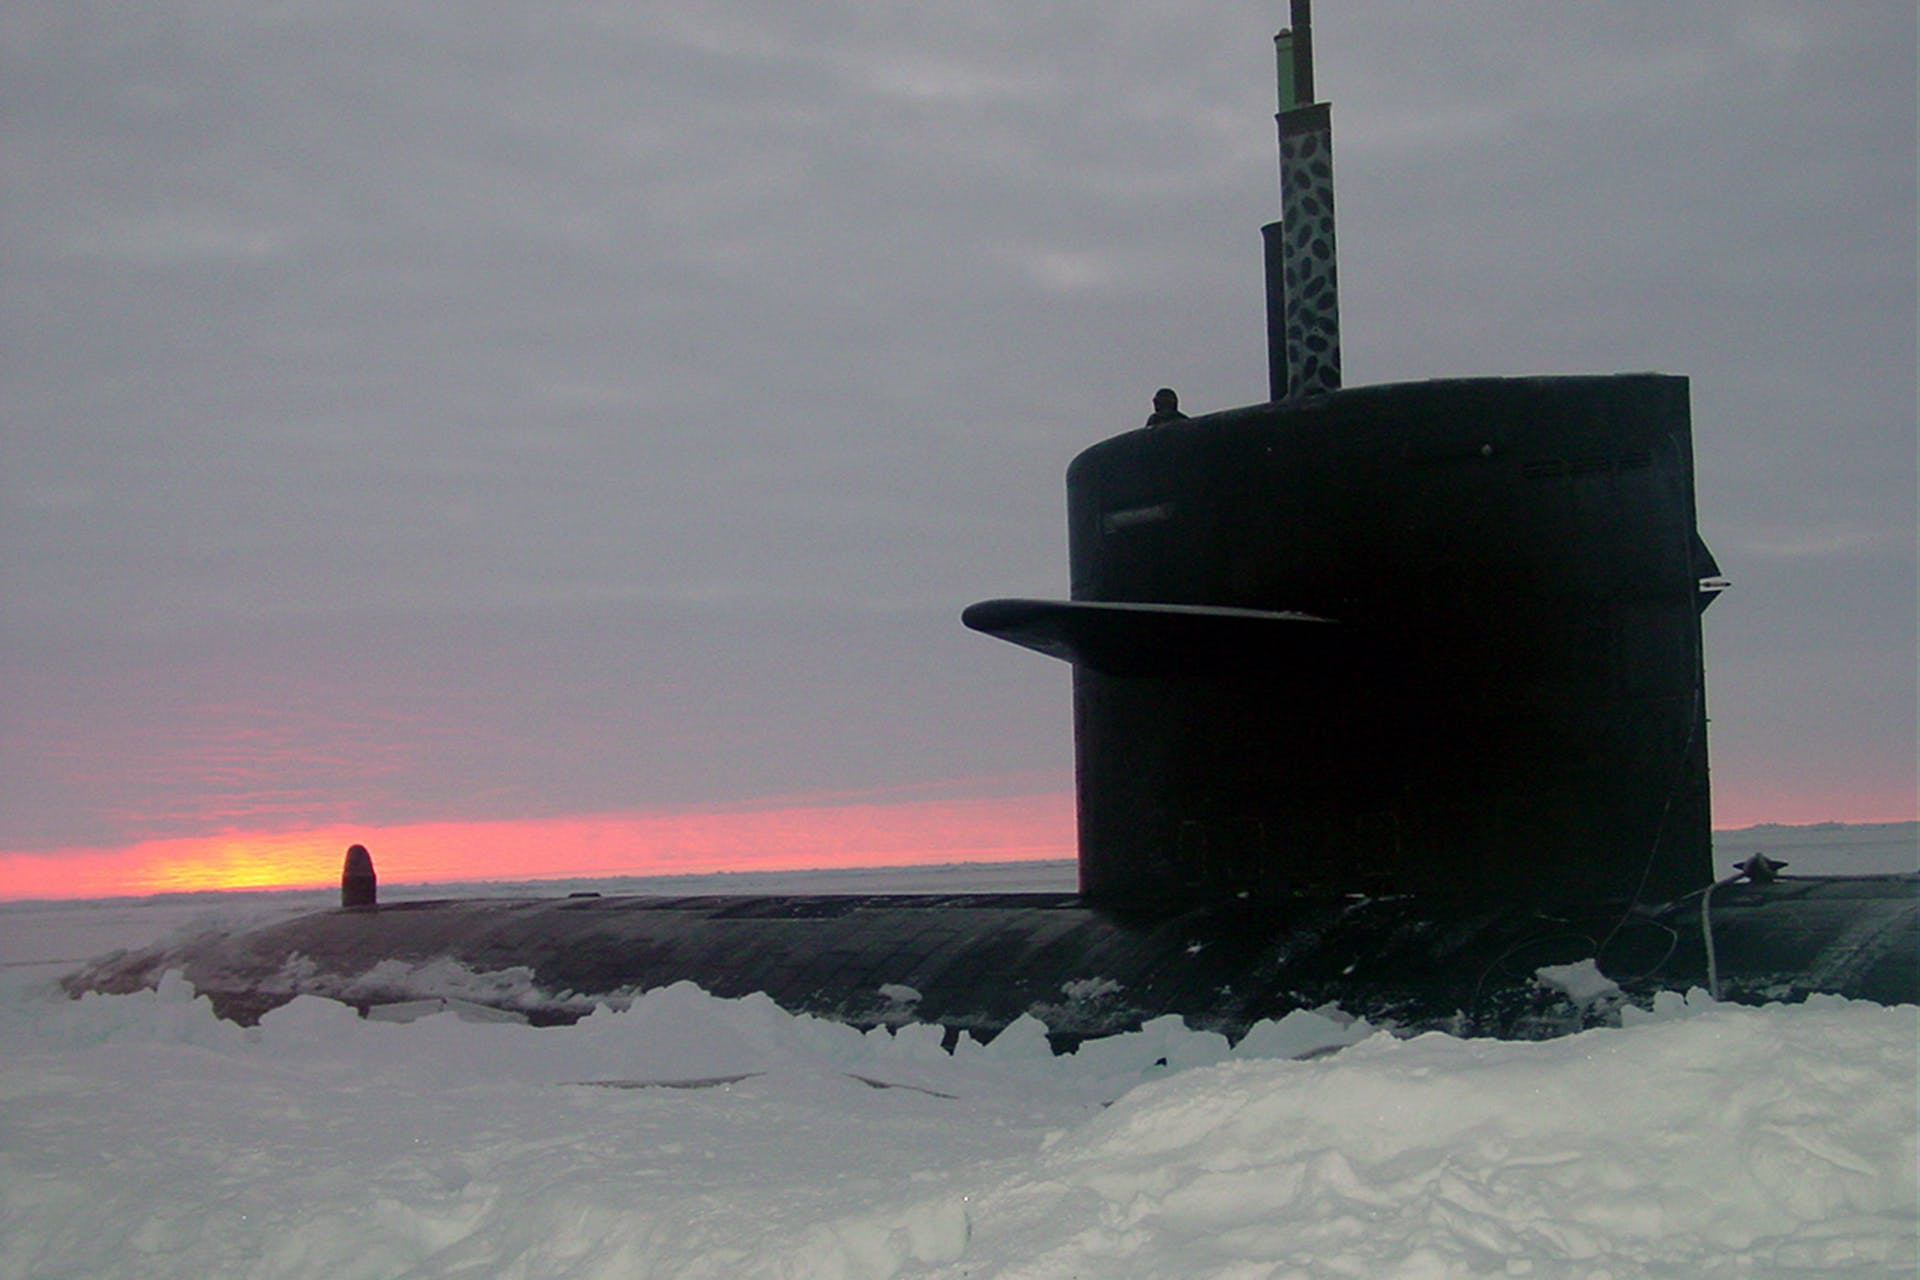 031000-N-XXXXB-004 Arctic Circle (Oct. 2003) -- The Los Angeles-class fast attack submarine USS Honolulu (SSN 718) sits surfaced 280 miles from the North Pole at sunset. Commanded by Cmdr. Charles Harris, USS Honolulu while conducting otherwise classified operations in the Arctic, collected scientific data and water samples for U.S. and Canadian Universities as part of an agreement with the Artic Submarine Laboratory (ASL) and the National Science Foundation (NSF).  USS Honolulu is the 24th Los Angeles-class submarine, and the first original design in her class to visit the North Pole region.  Honolulu is as assigned to Commander Submarine Pacific, Submarine Squadron Three, Pearl Harbor, Hawaii.  U. S. Navy photo by Chief Yeoman Alphonso Braggs.  (RELEASED)